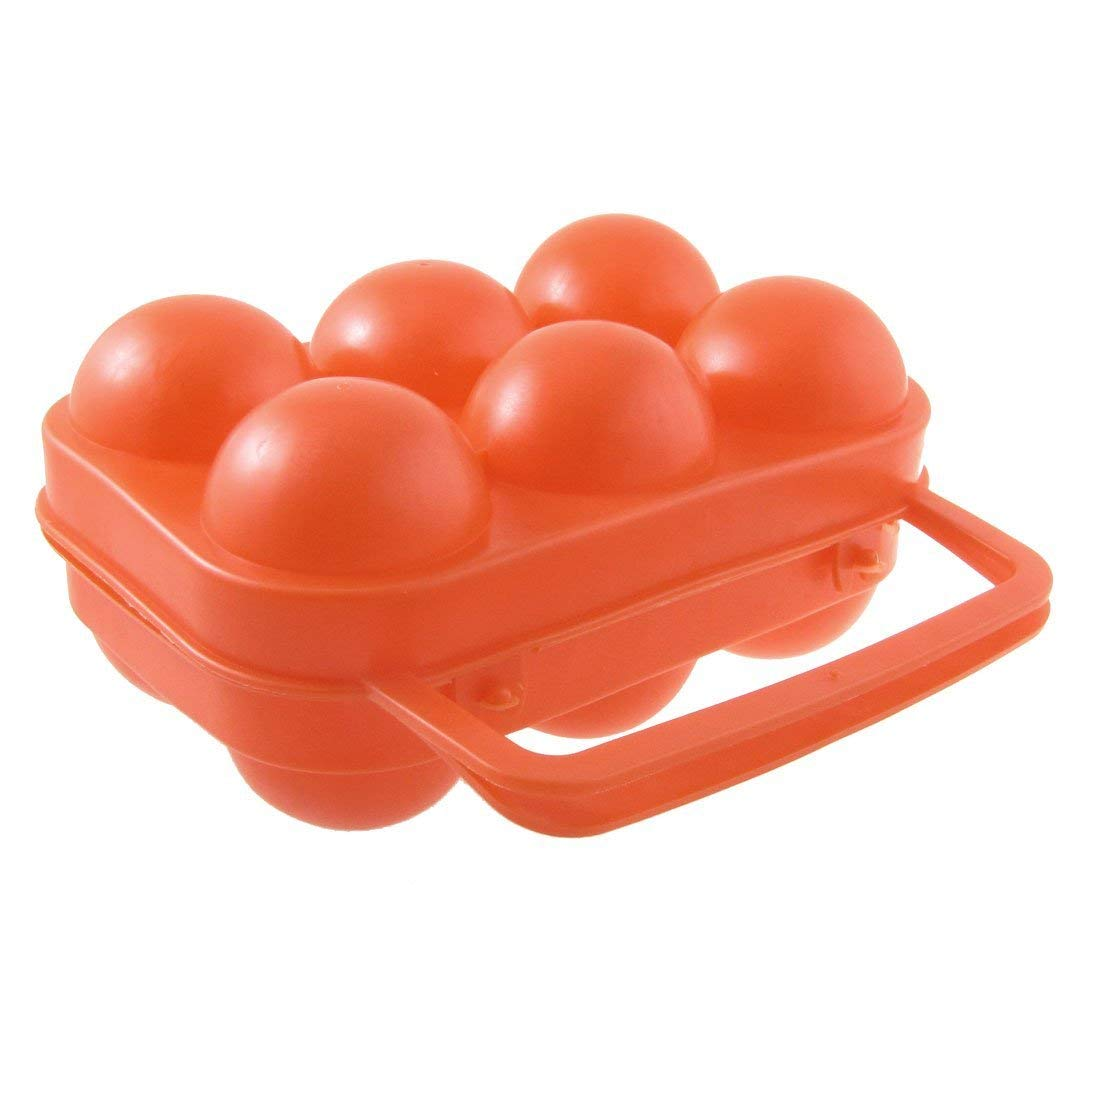 Egg Color - Refrigerator Supplied 6 Grids Egg Storage Box Colored Transparent Container Tray Plastic Carrier - Kits Chart Pass Paas Dye Game Match Machine Learning Easter